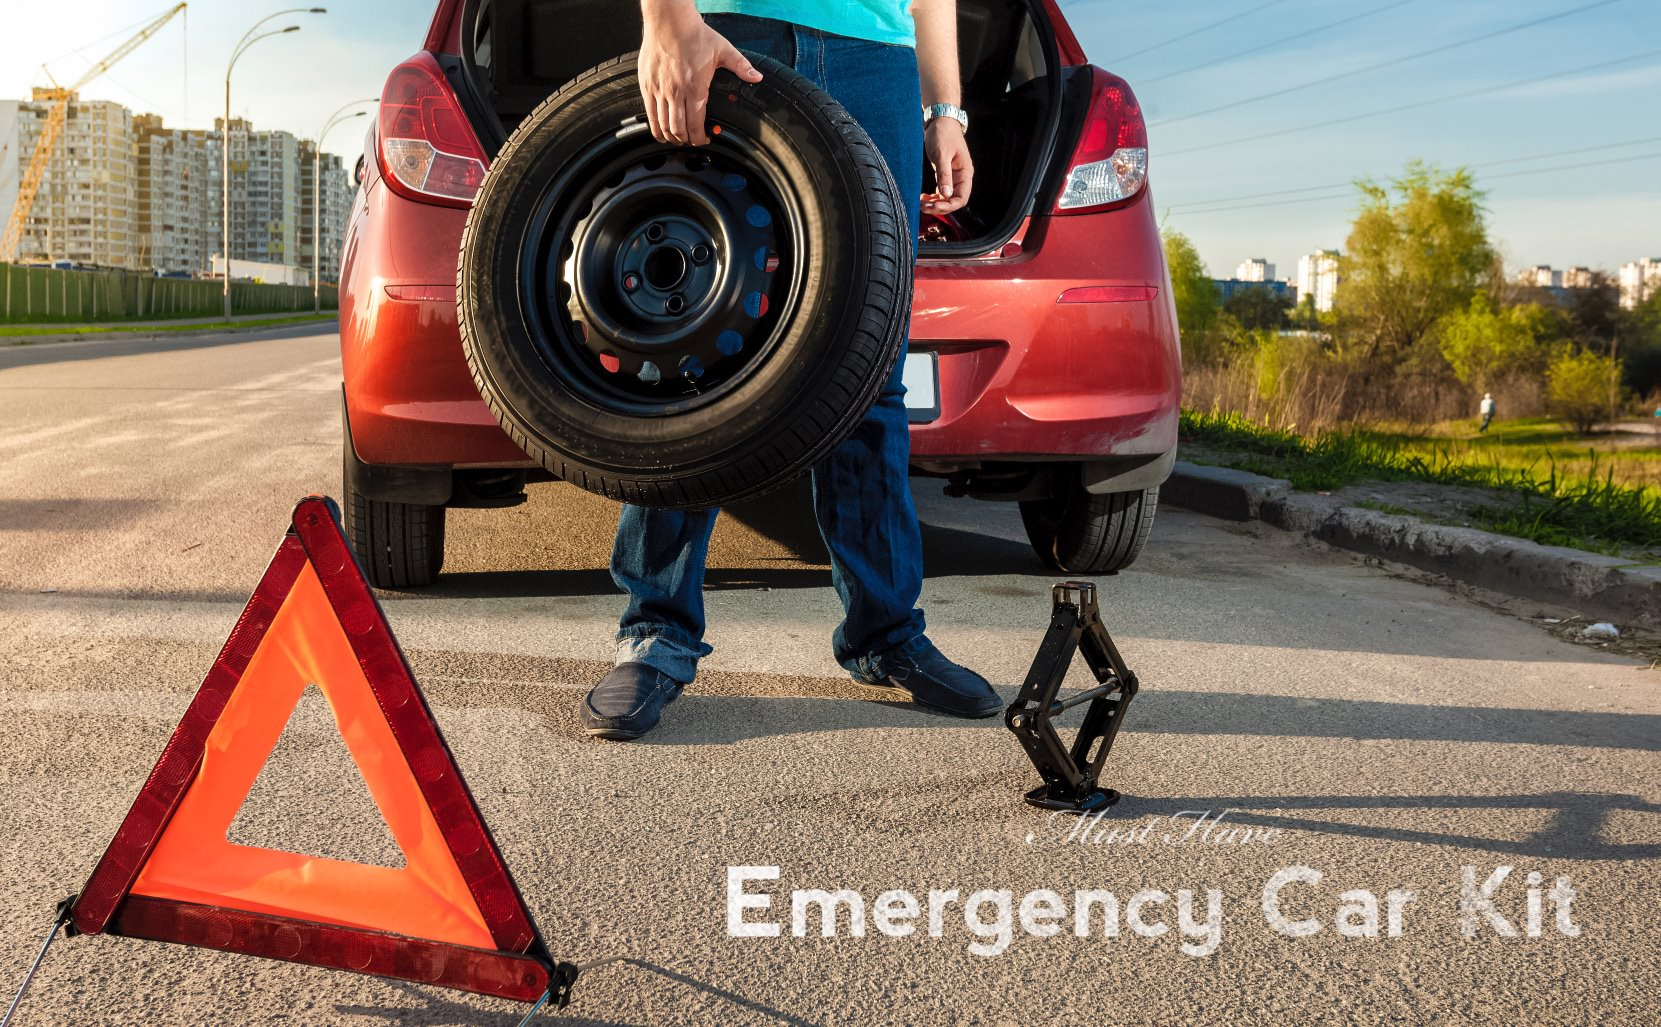 Must Have: Emergency Car Kit